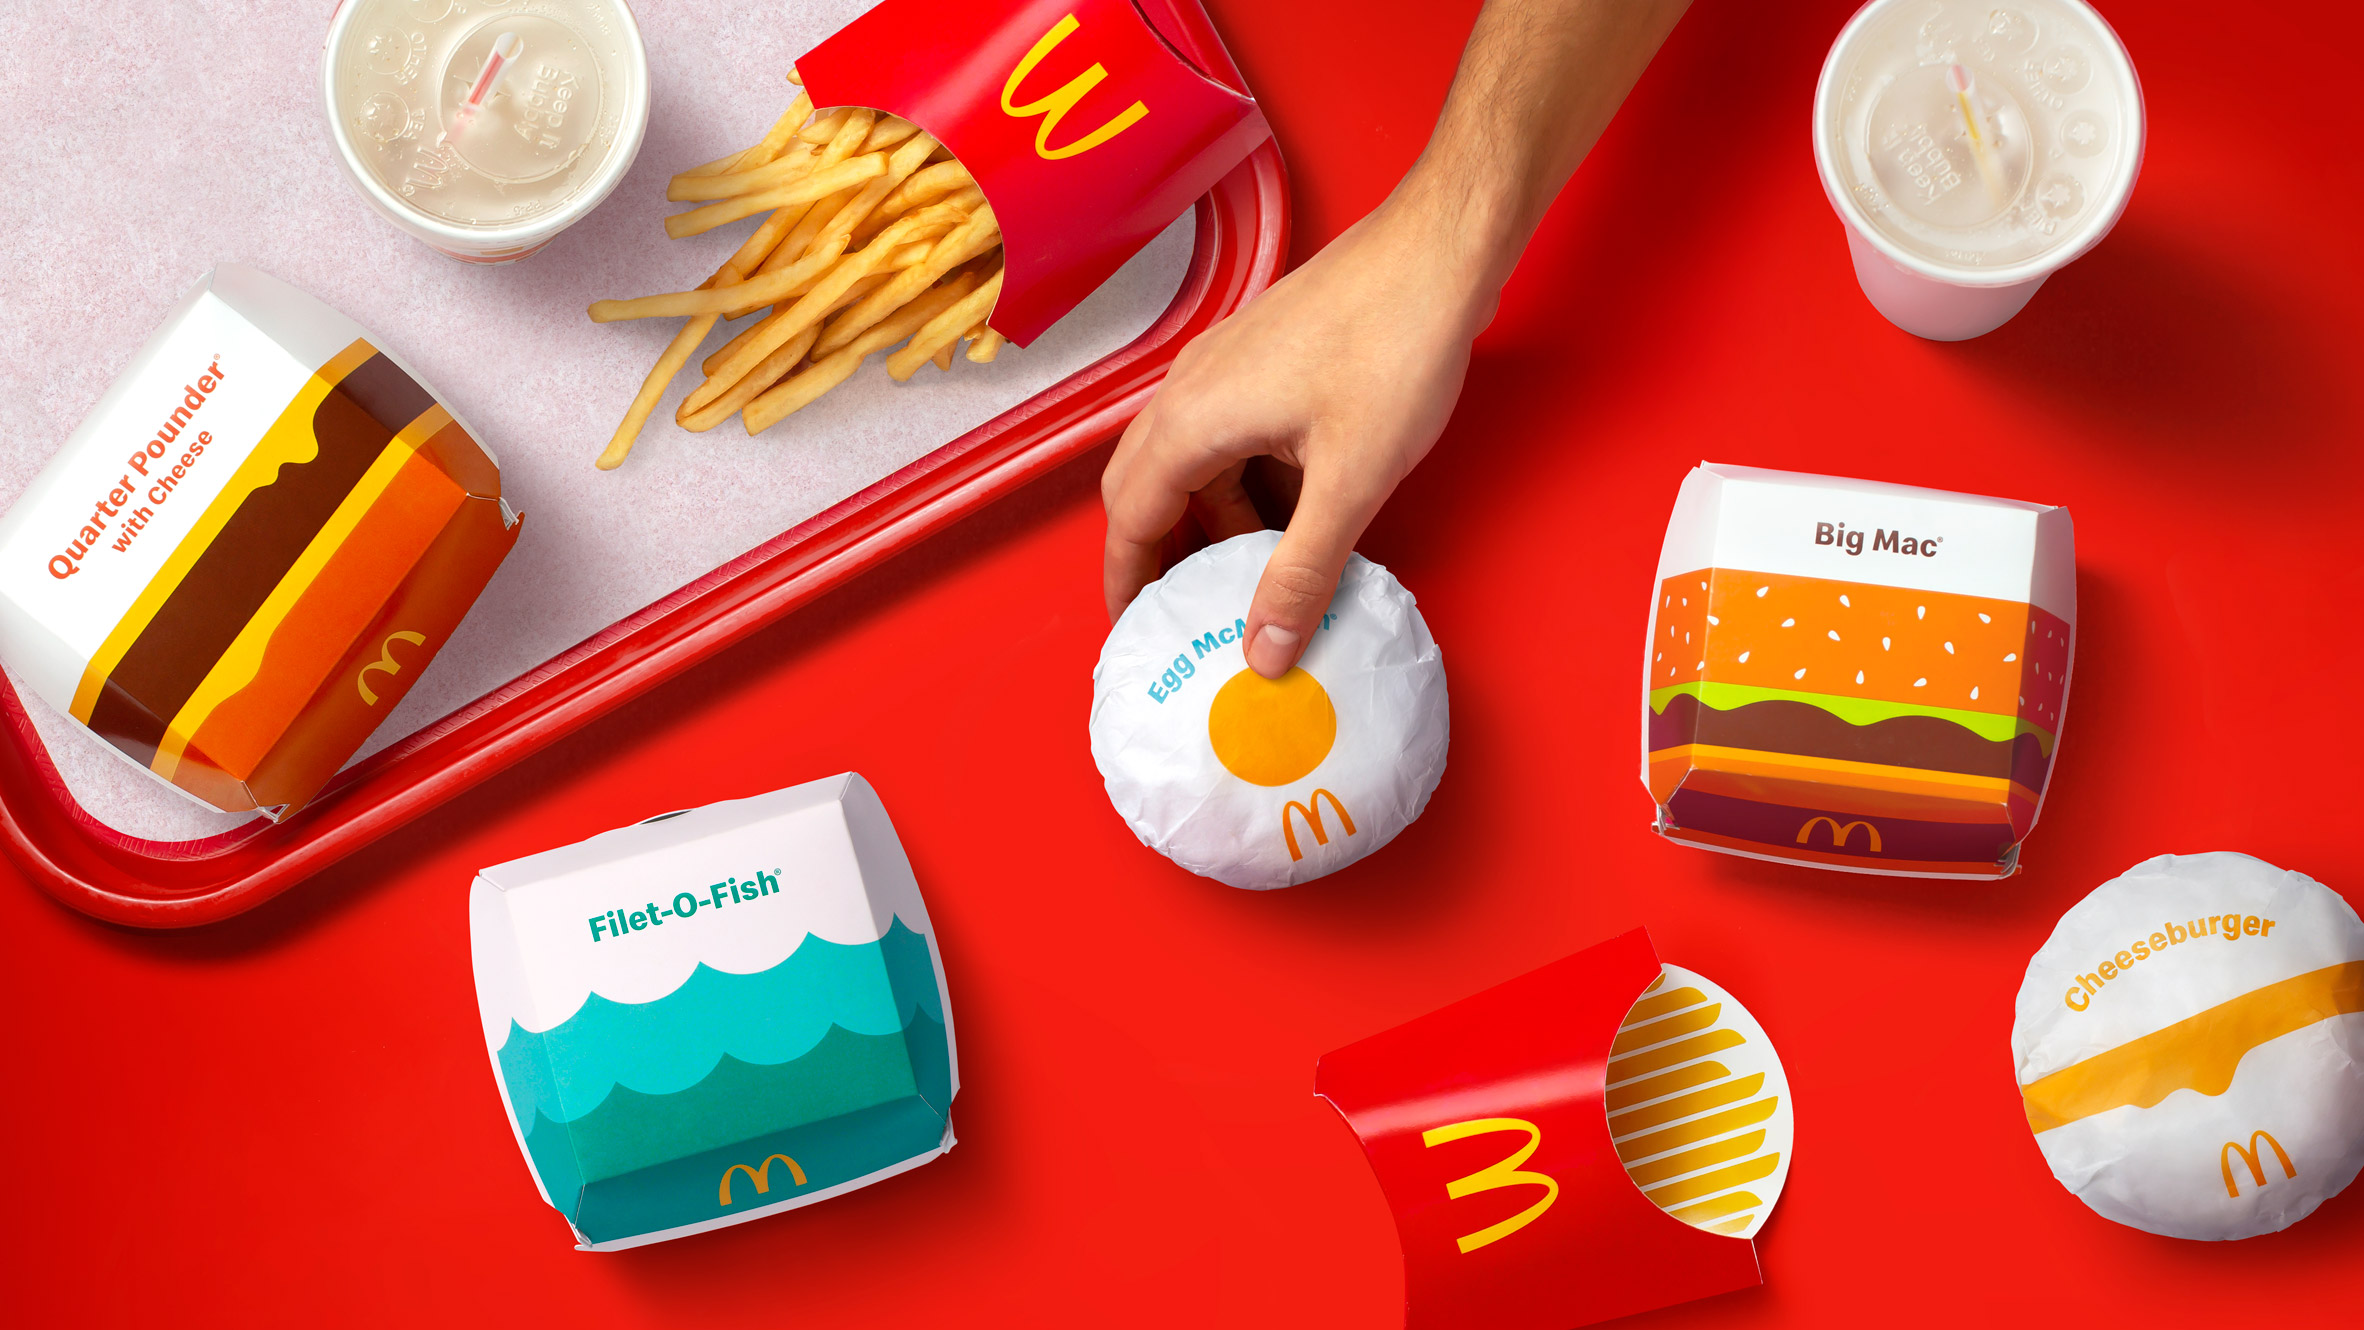 McDonald's packaging by Pearlfisher